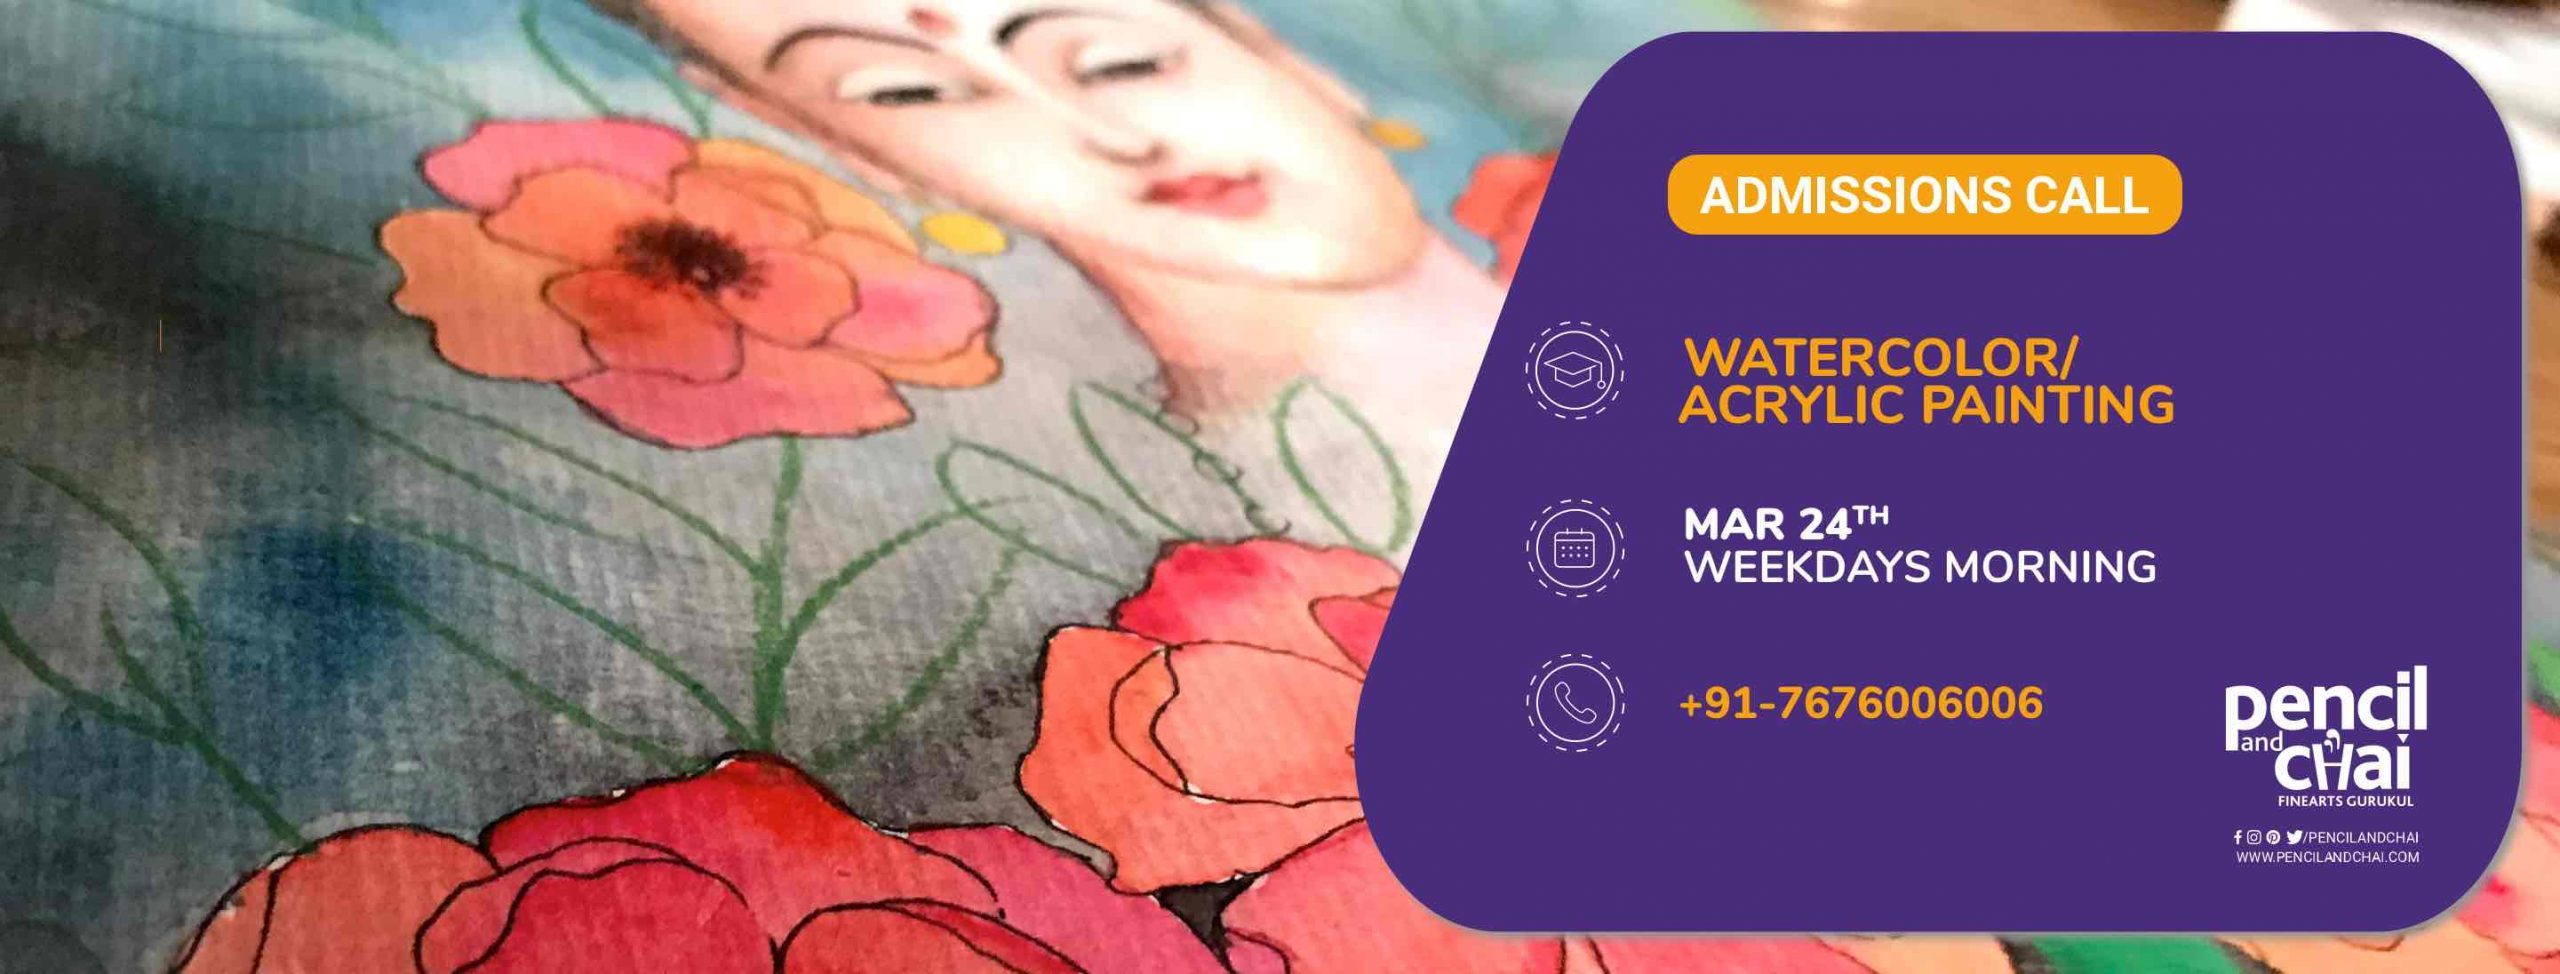 New Watercolor & Acrylic Painting Course for Adults by Pencil & Chai.